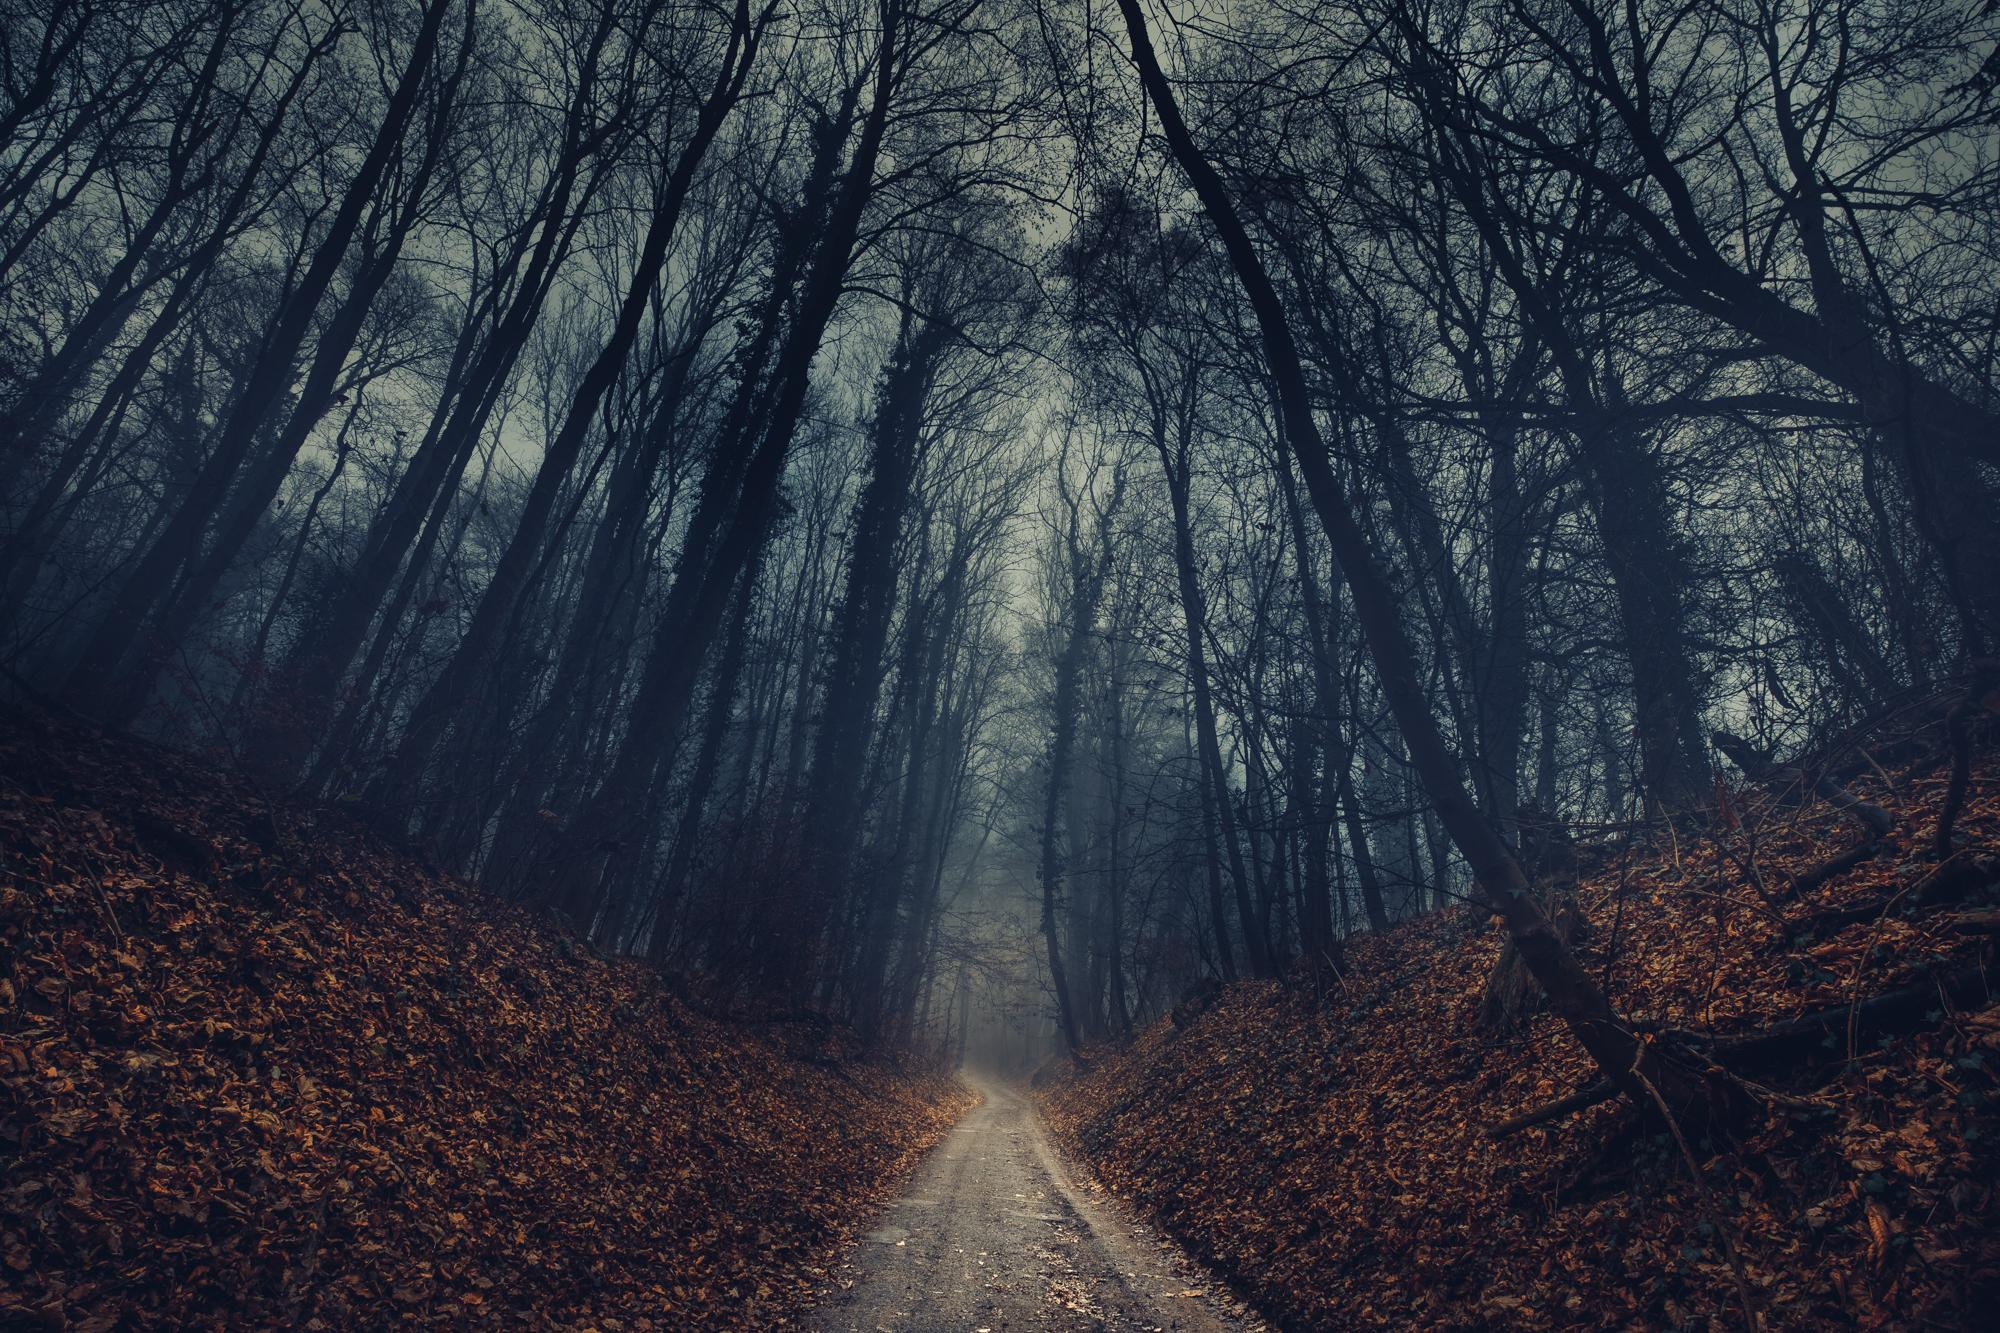 Fall Flowers Wallpaper Desktop Free Photo Forest Path Scary Wood Tree Free